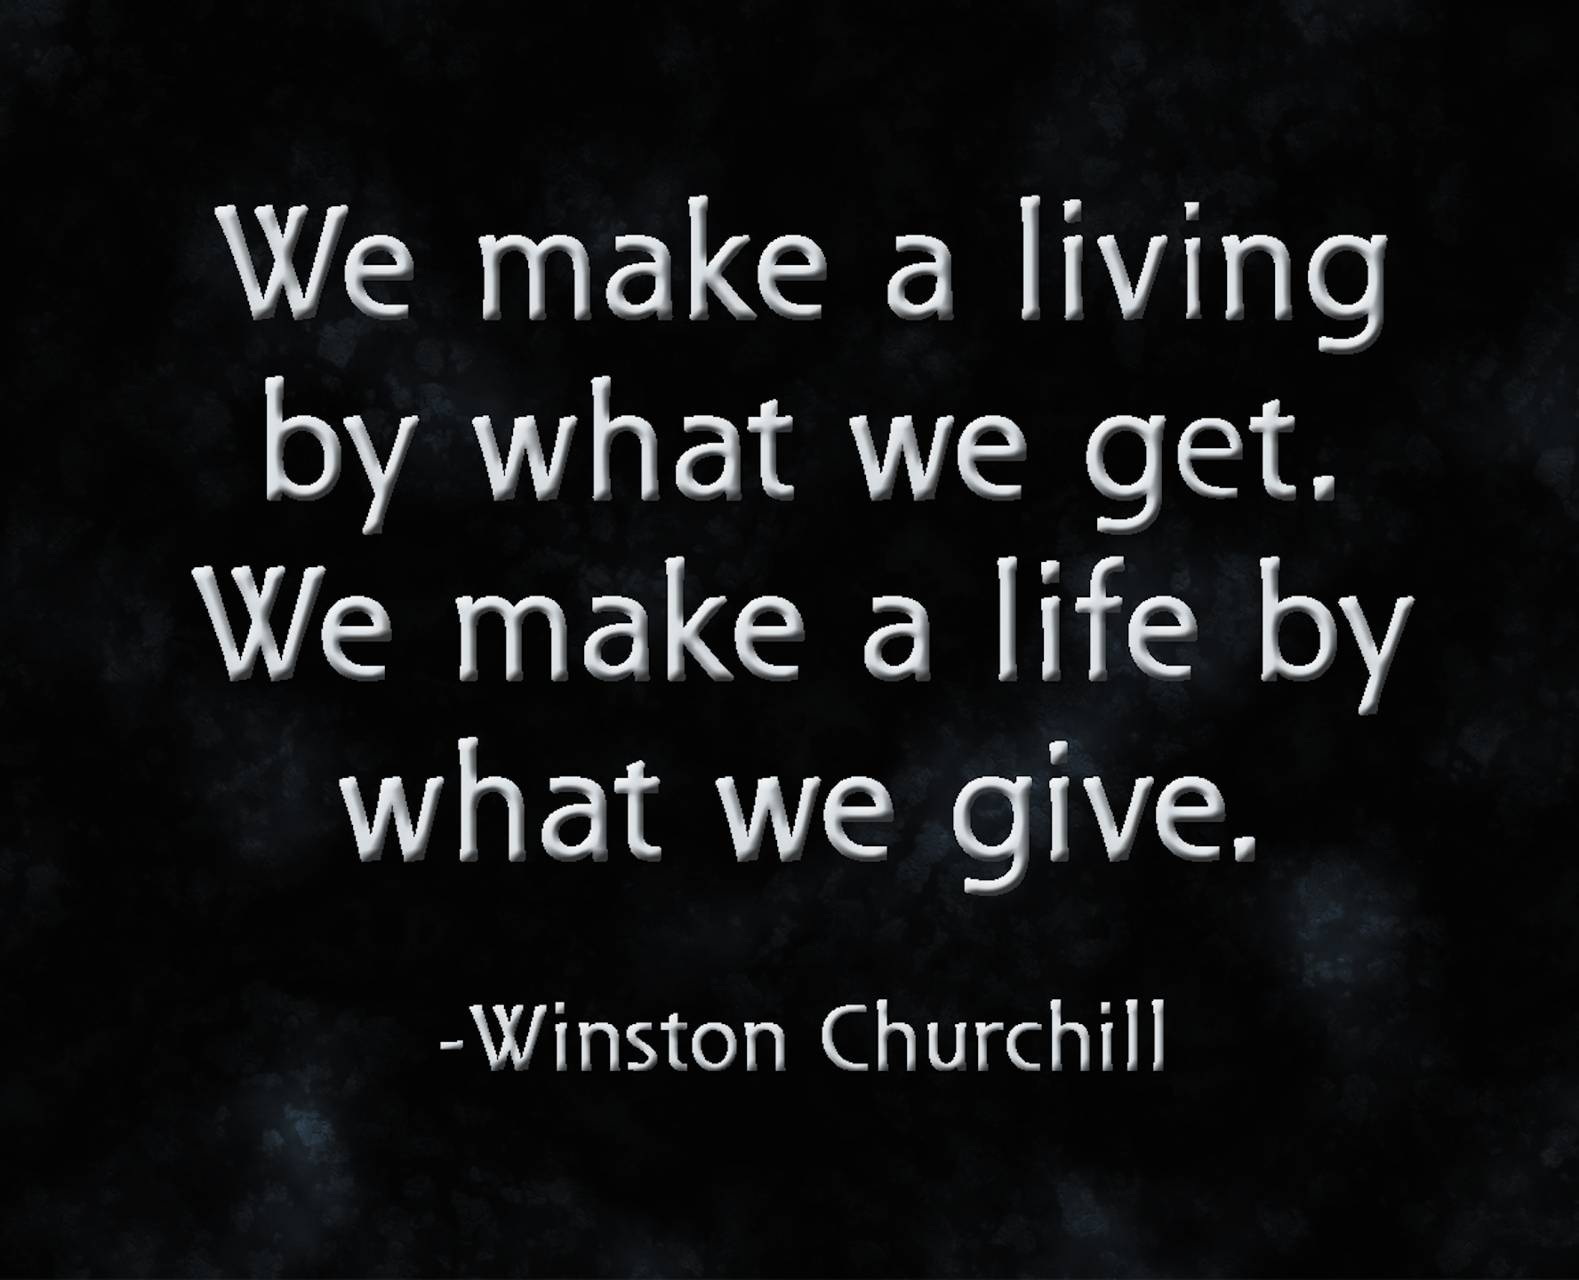 Get and Give